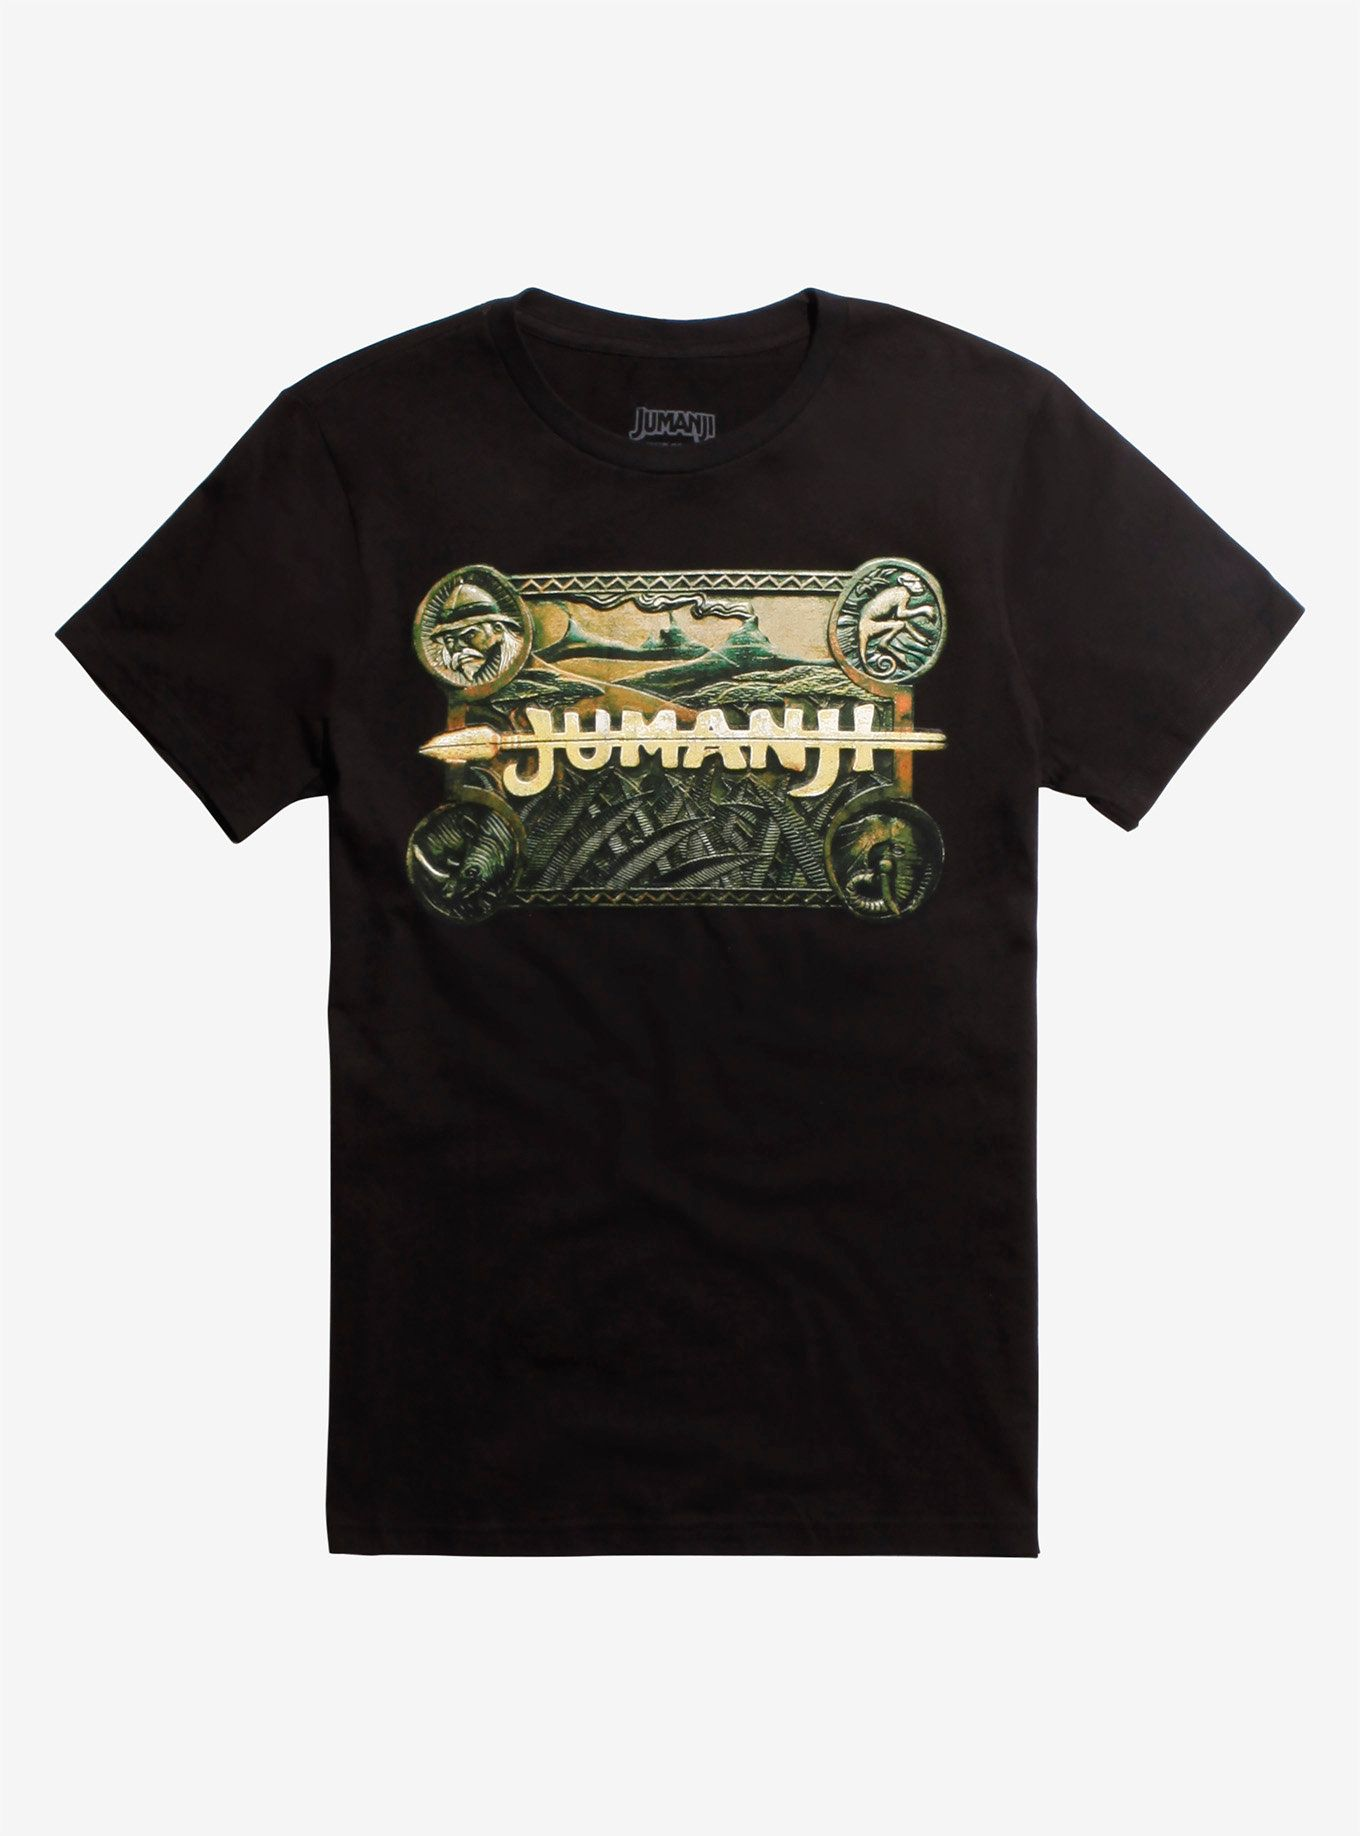 6c86d8256b2 Black T-shirt from the classic 90s film Jumanji with a logo graphic inspired  by the board game featured in the movie. Are you game  100% cotton Wash  cold  ...